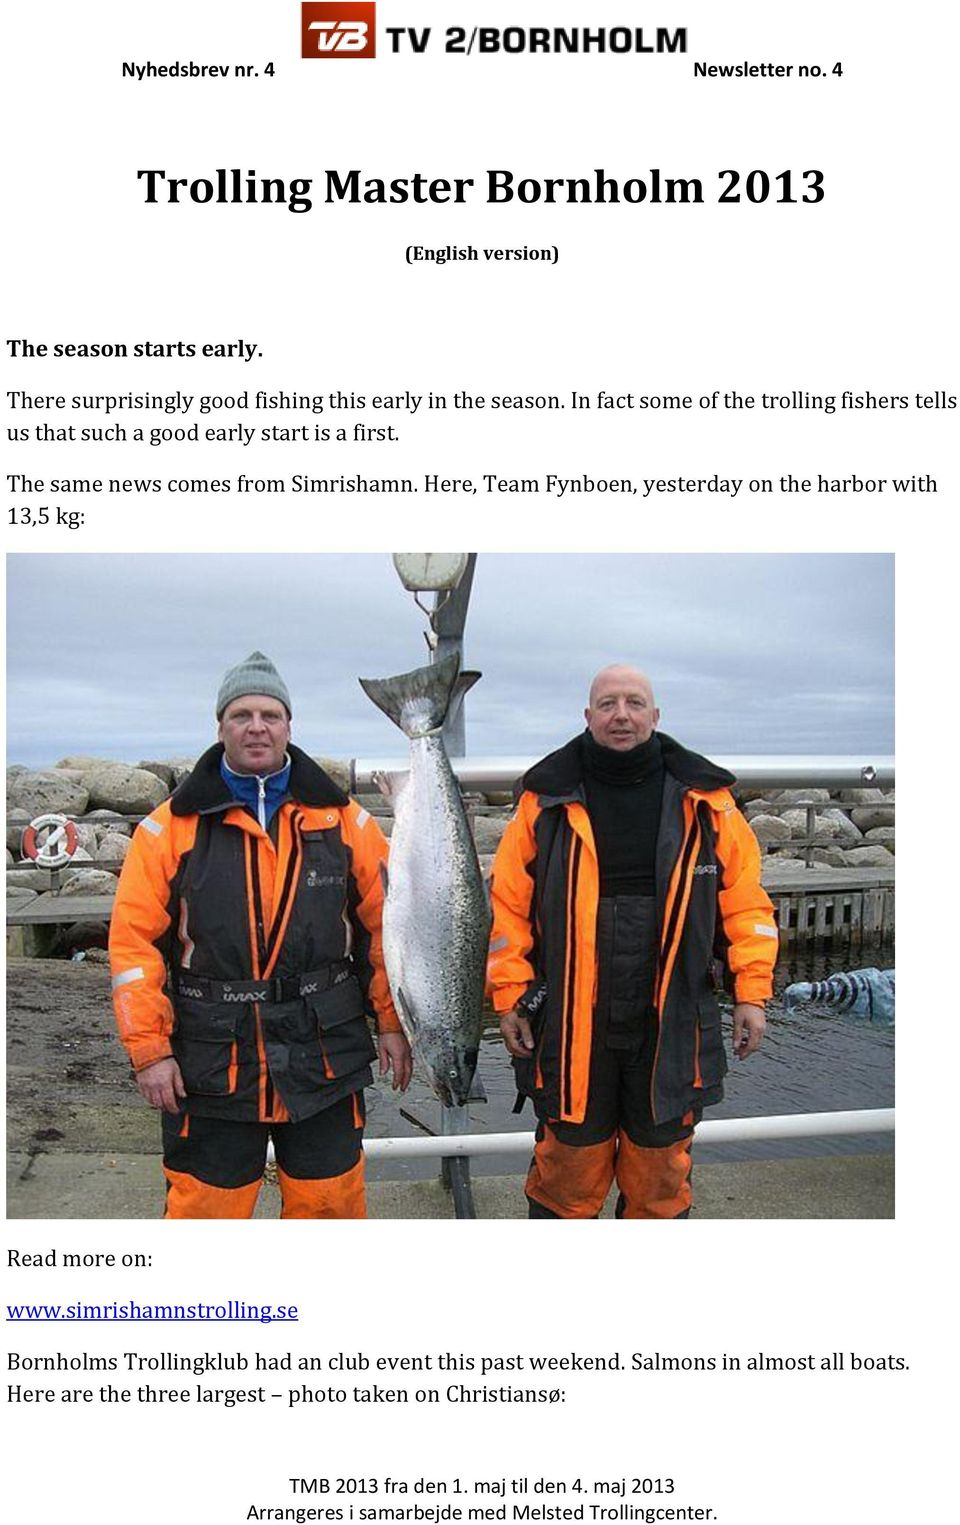 The same news comes from Simrishamn. Here, Team Fynboen, yesterday on the harbor with 13,5 kg: Read more on: www.